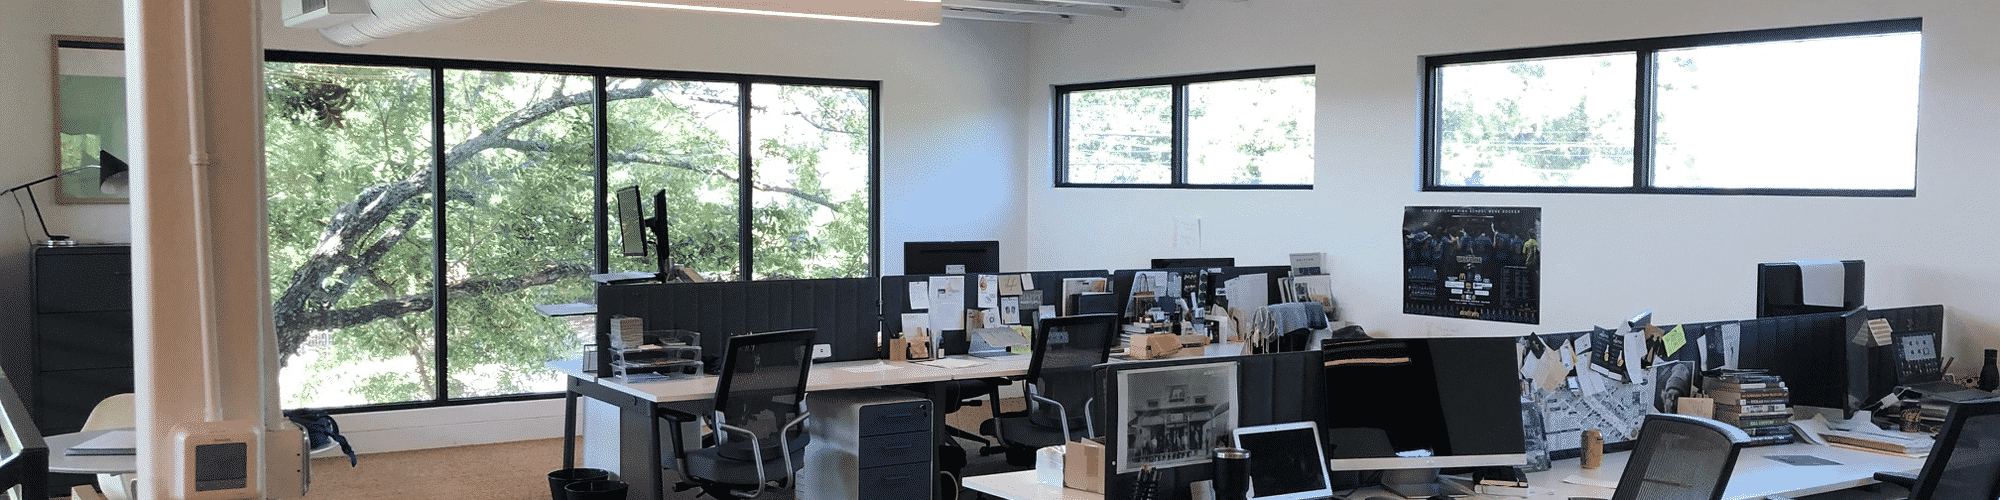 520-East-Oltorf-Sublease-Second-Floor-Workstations